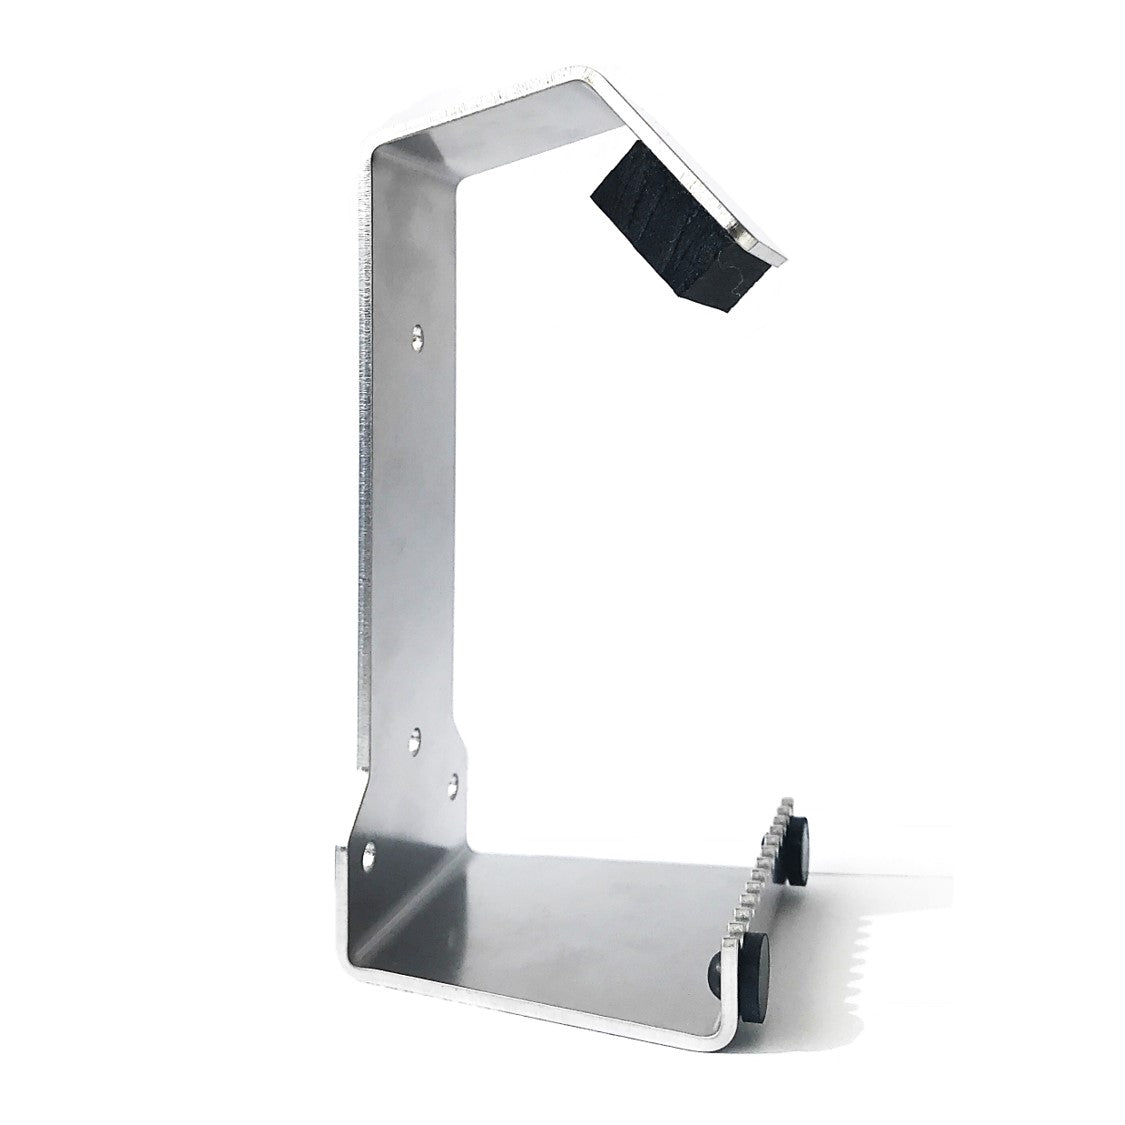 HybridPull© Sanitary Foot Door Opener. Side view. Made in Canada. DoorOpener Canada.